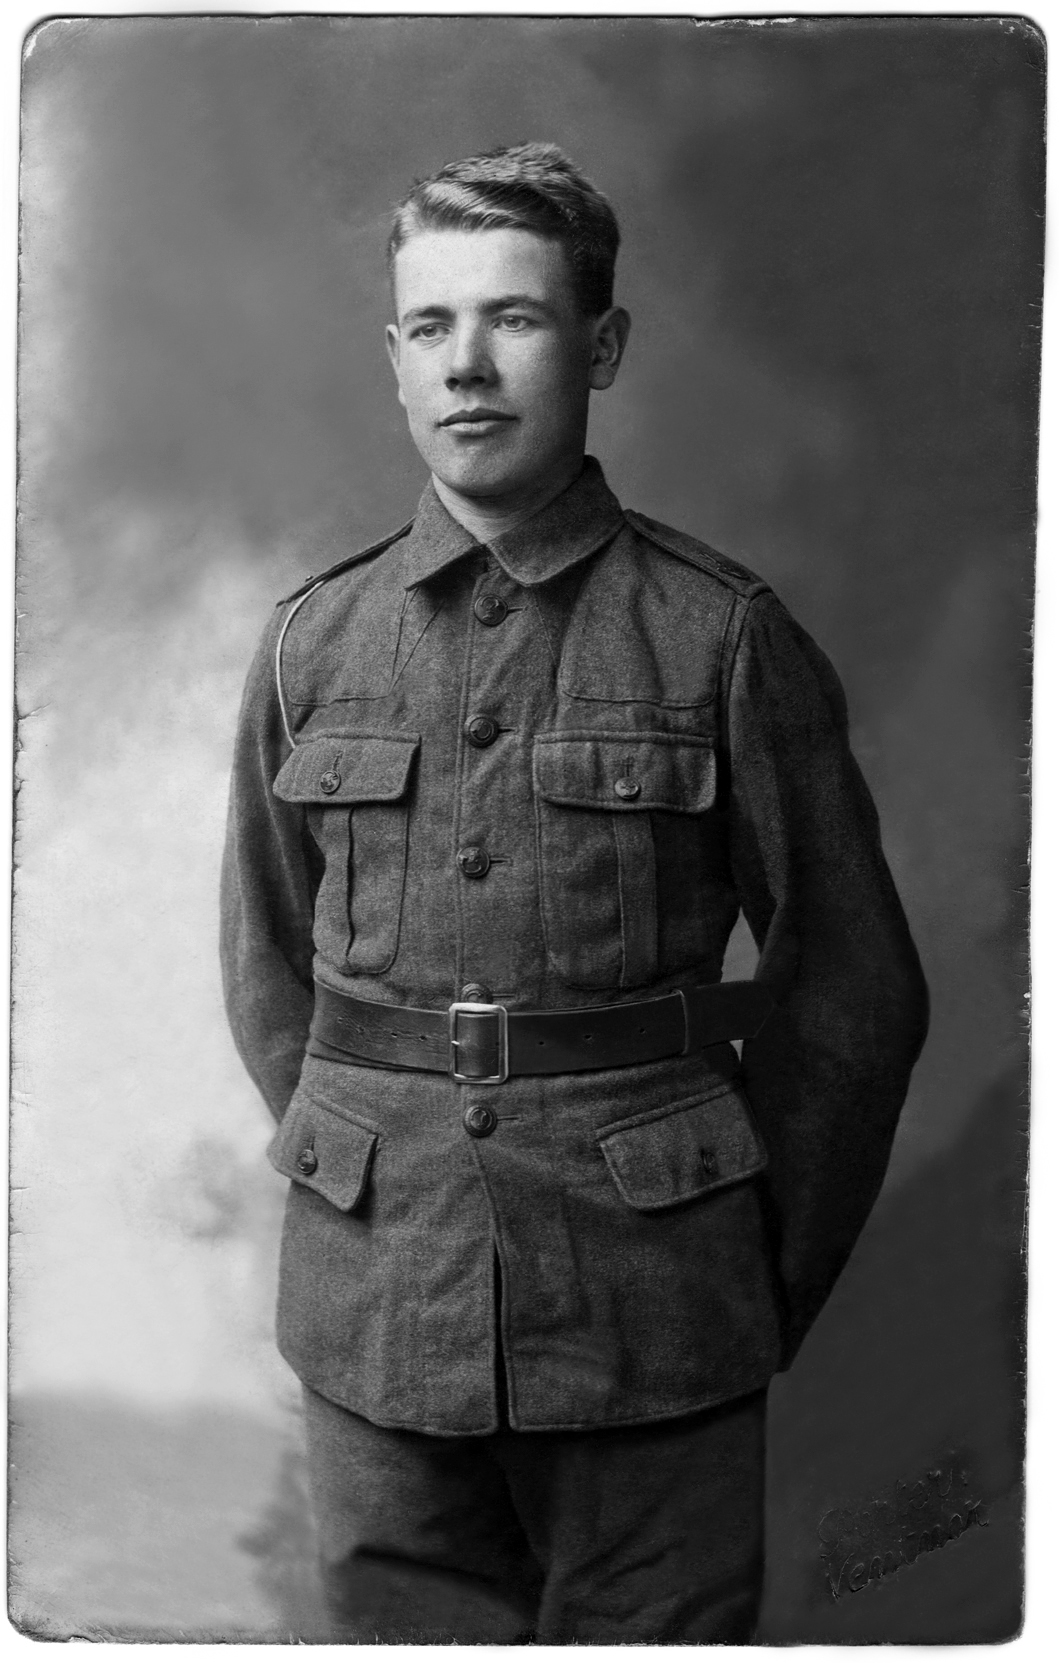 Private Frank Saunders